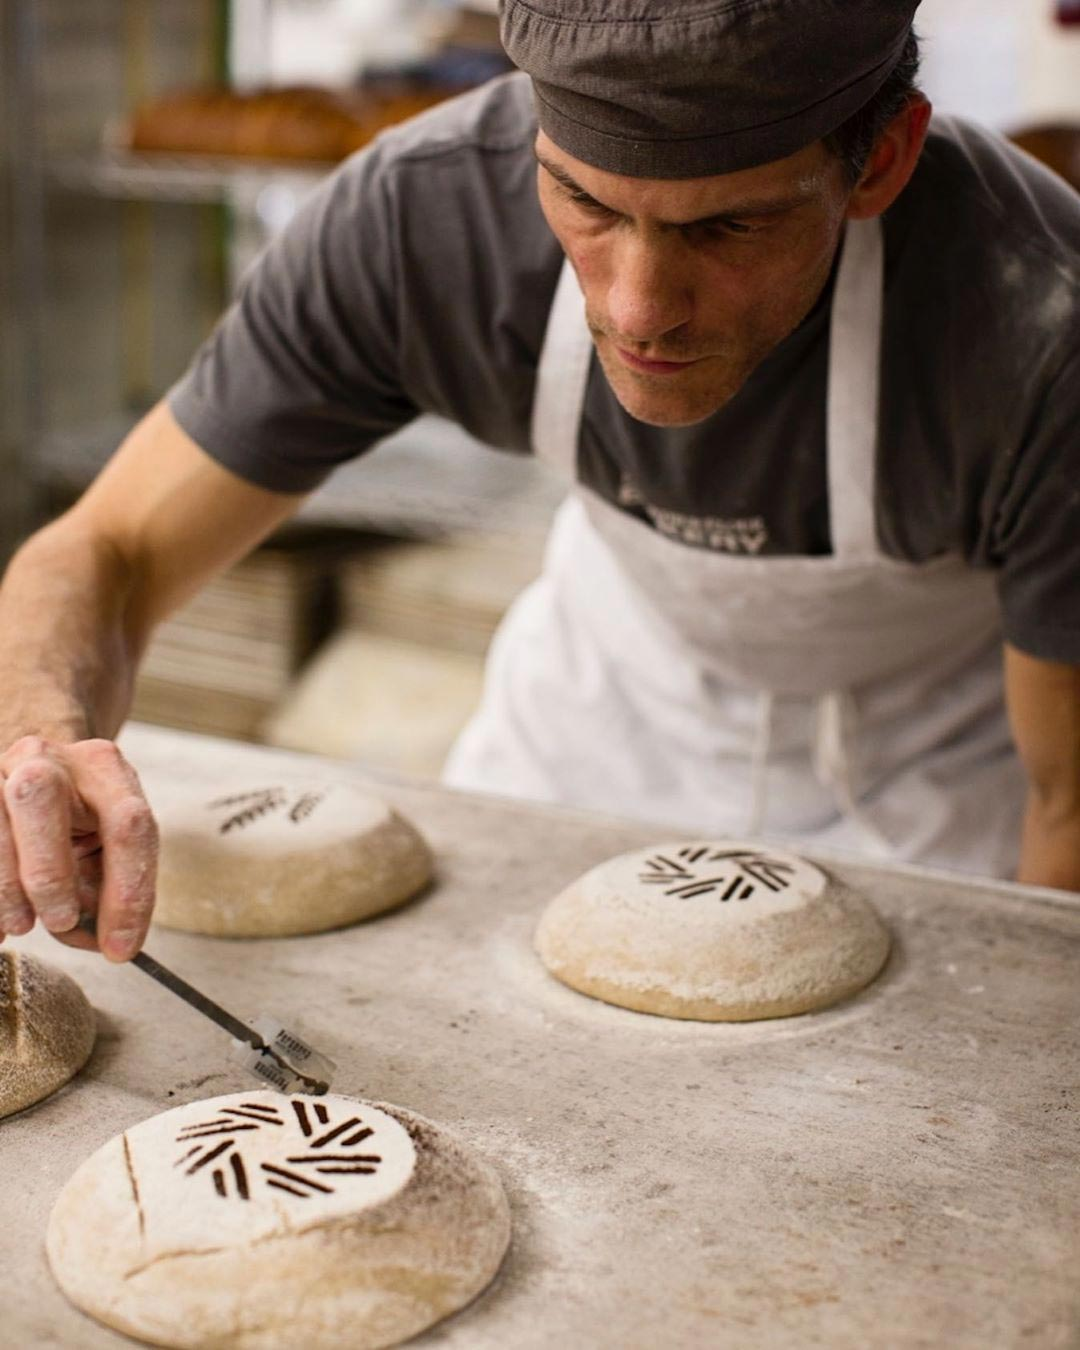 King Arthur Flour Instagram Image of a Baker